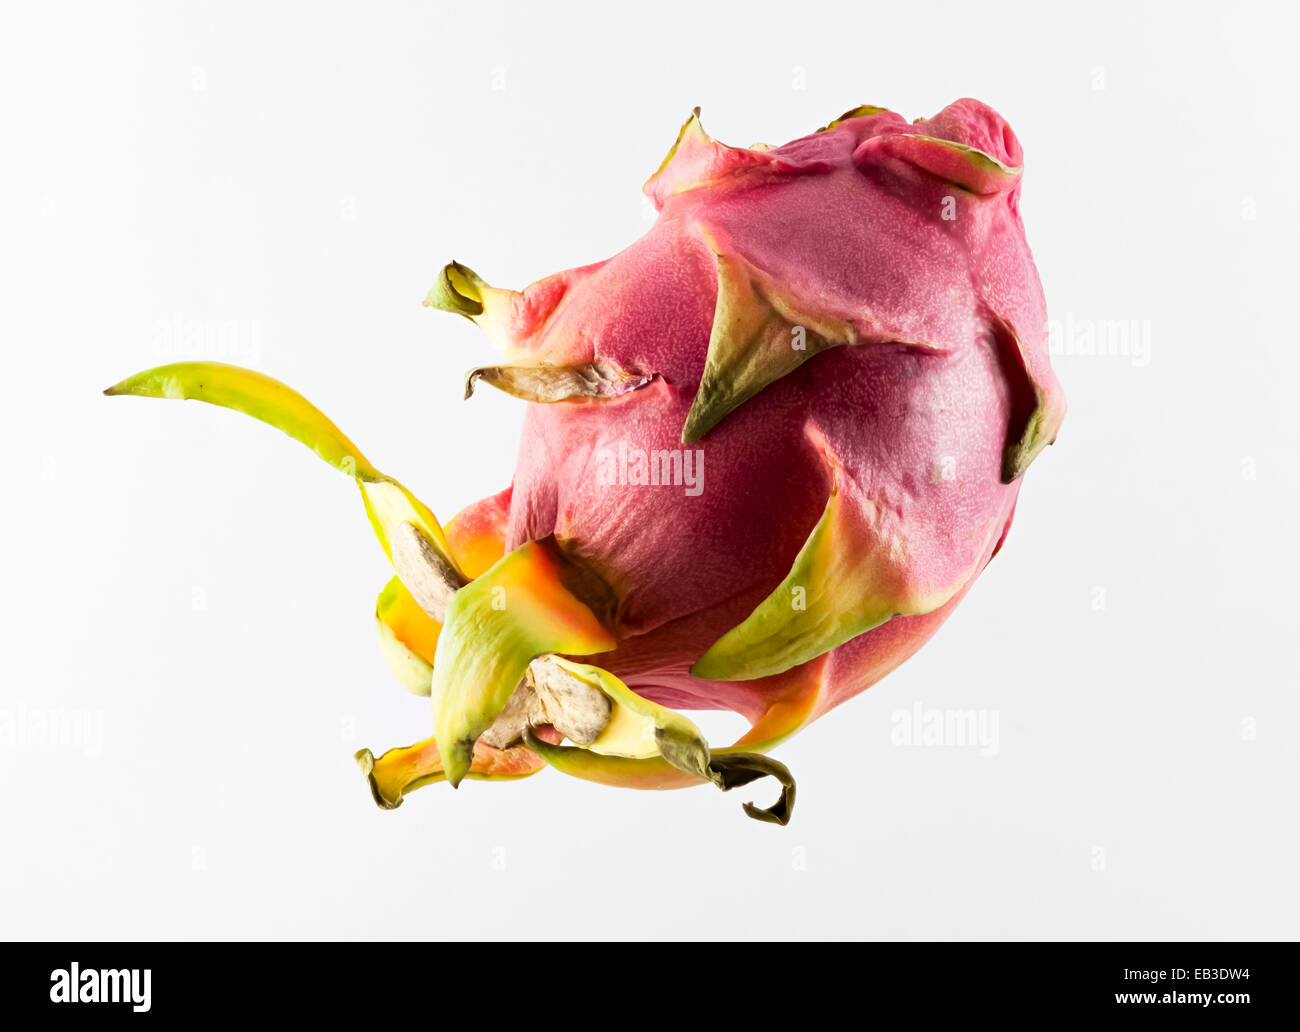 Dragon fruit, or pitahaya, a tropical fruit of the genus Hylocereus - Stock Image